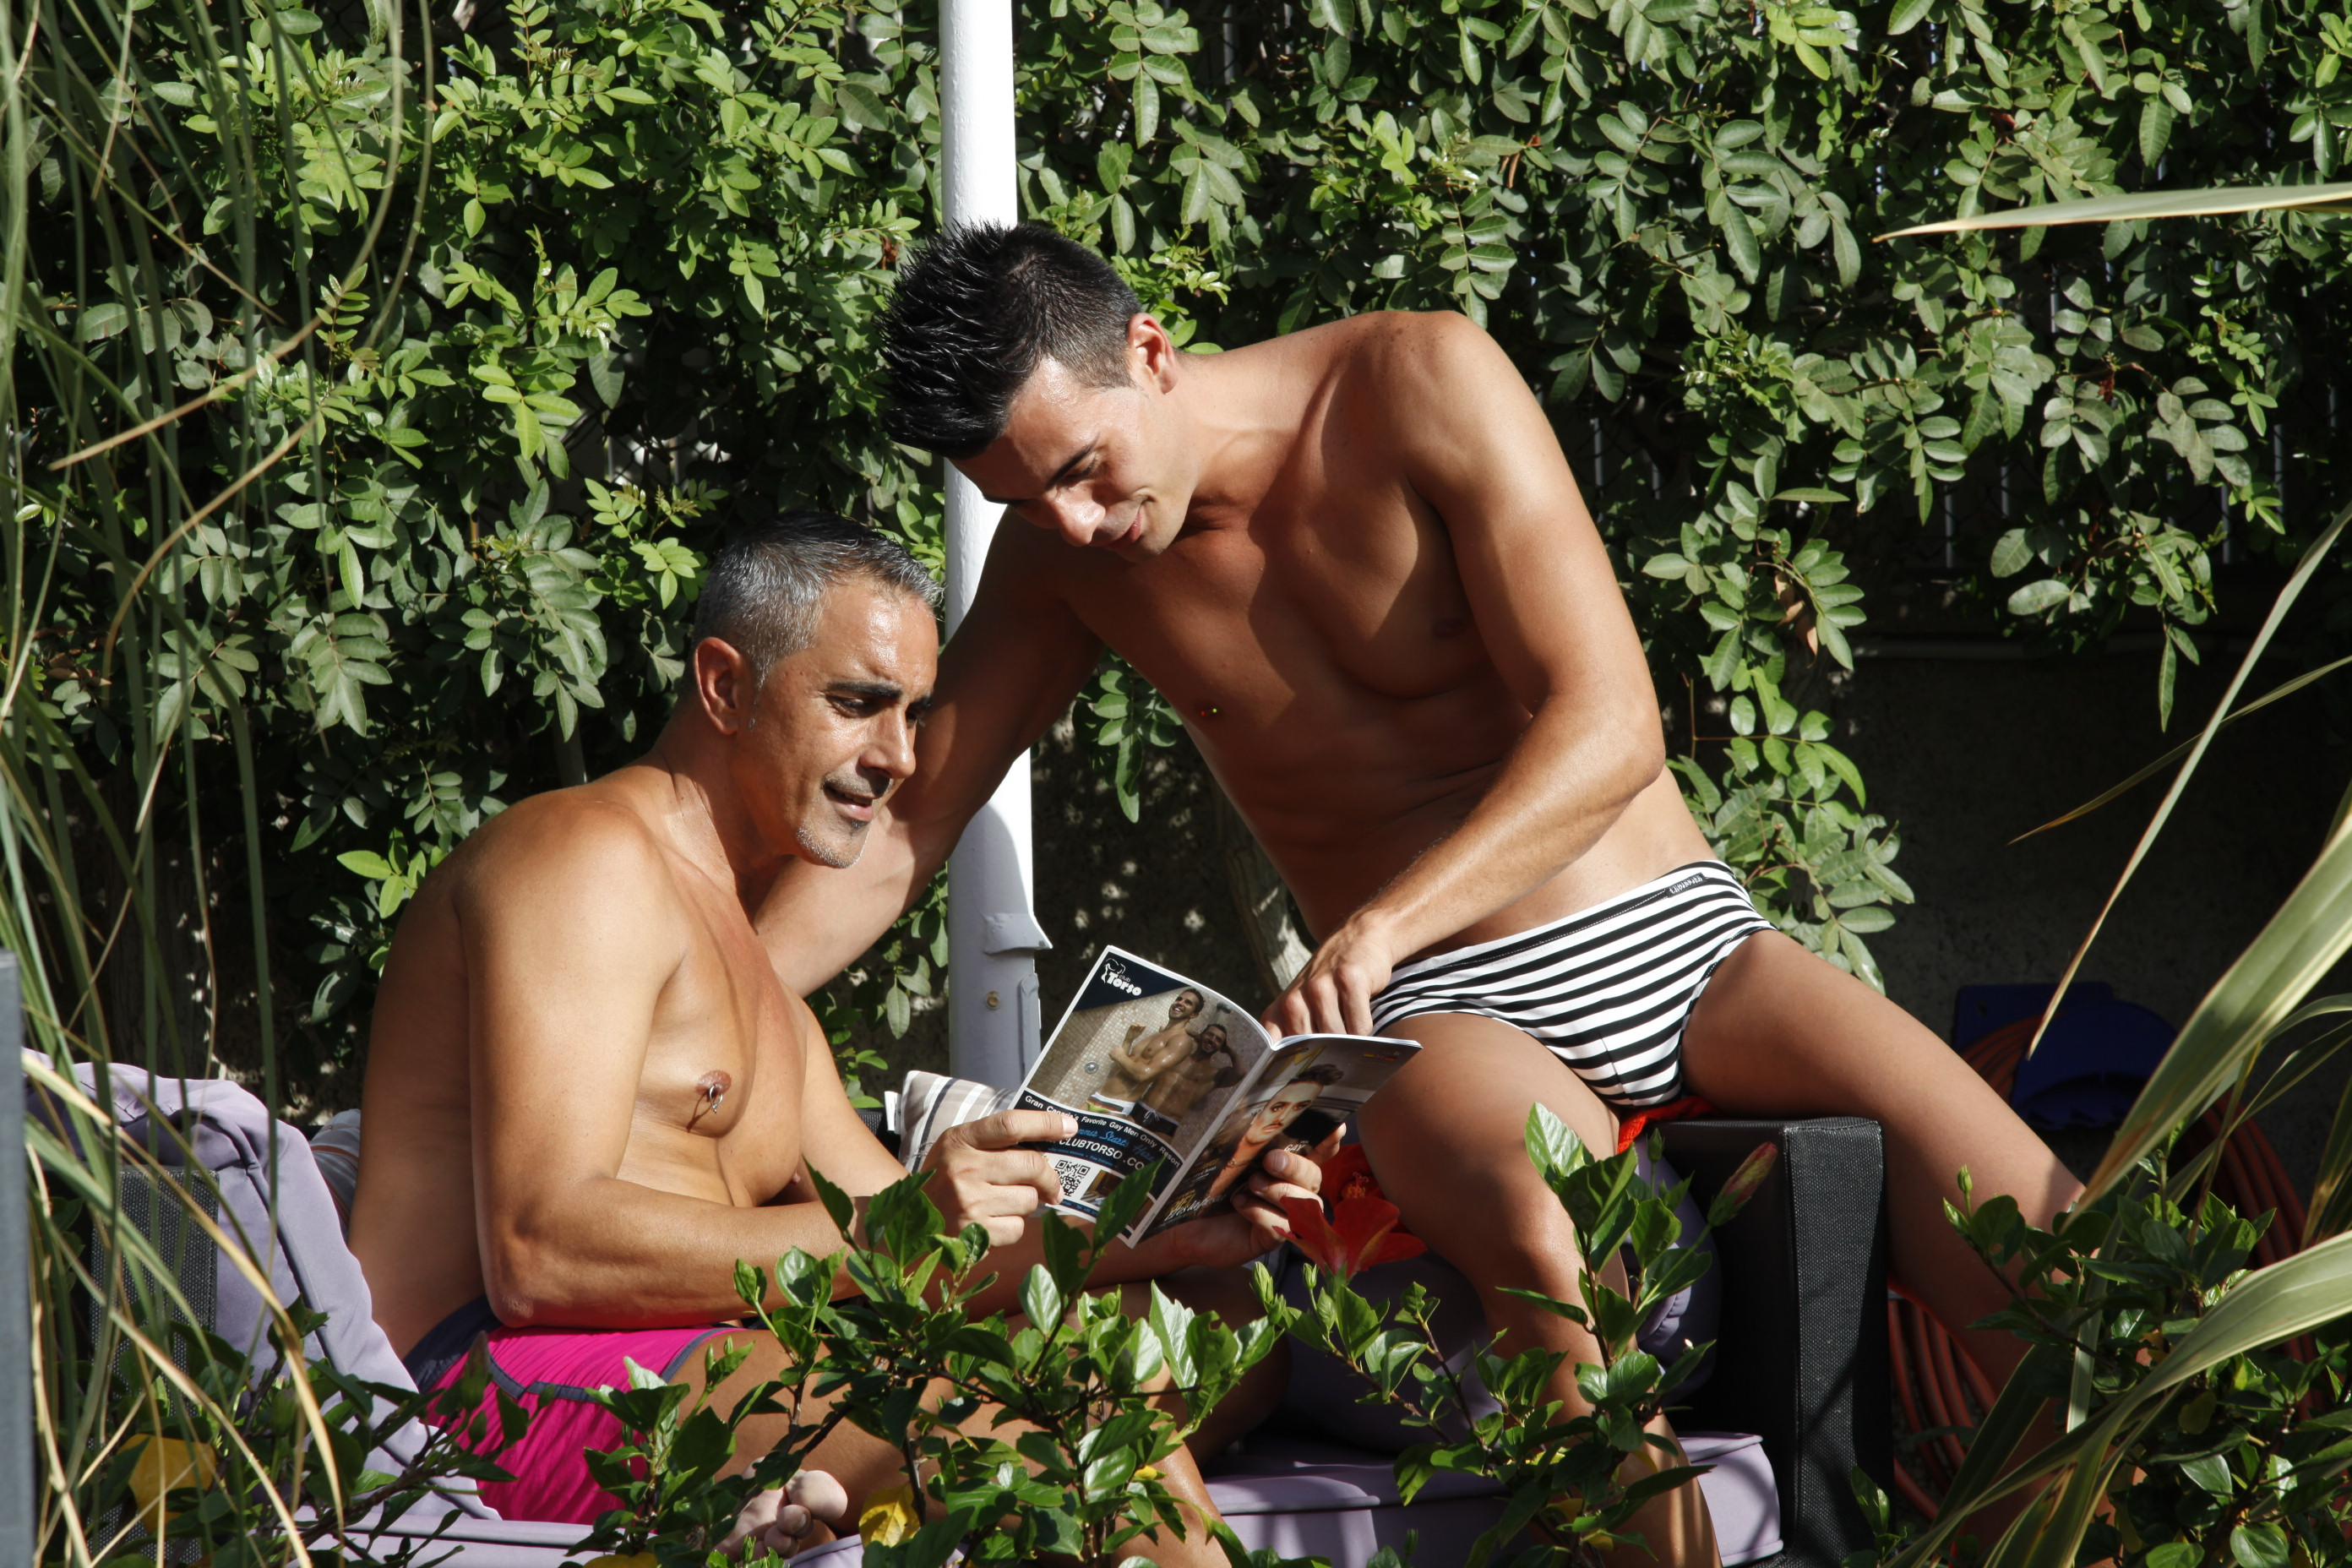 Gay Resort Hotel Club torso Gran Canaria tuin zitplek